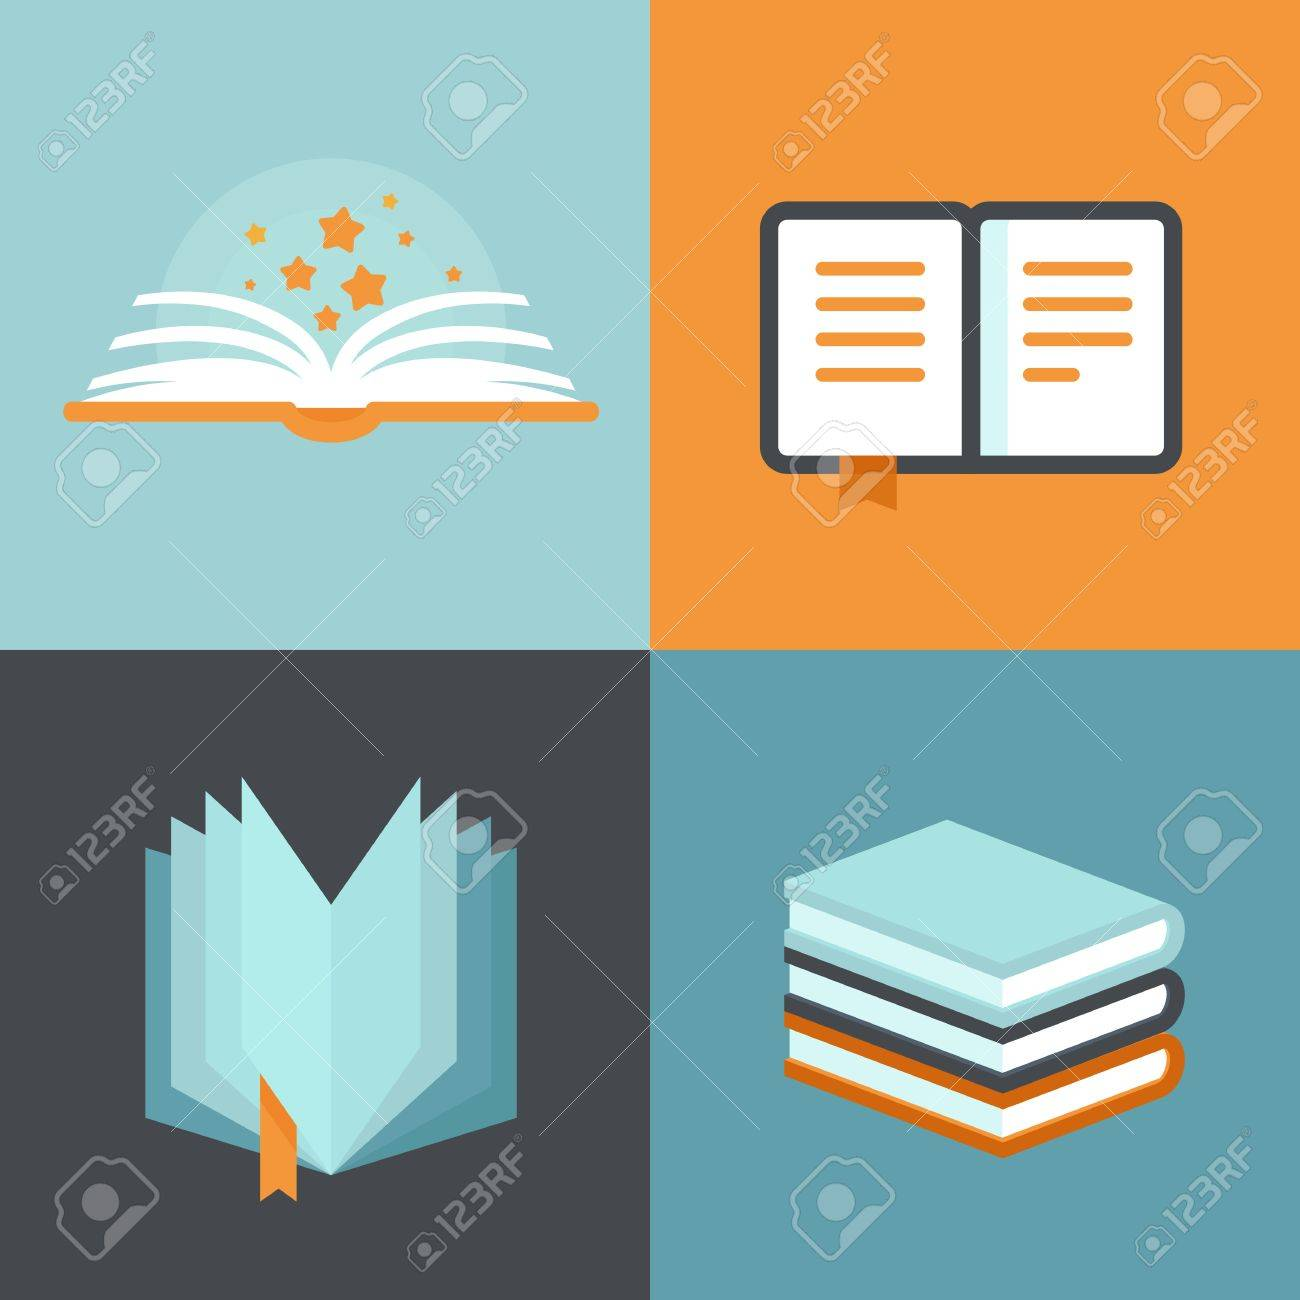 Vector Book Signs And Symbols Education Concepts In Flat Style